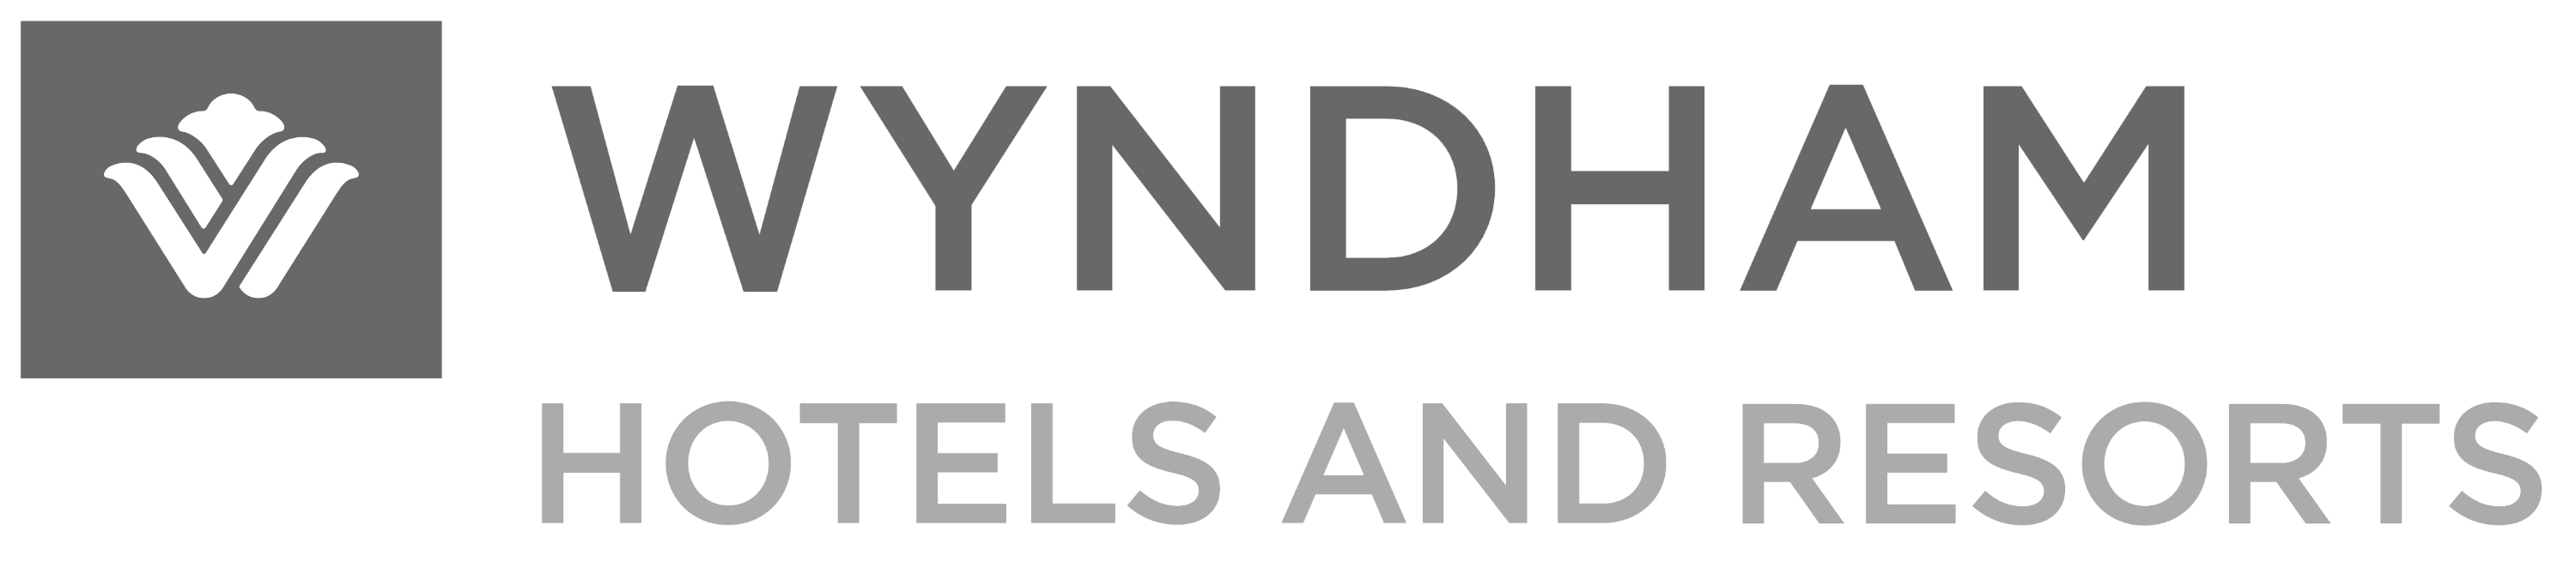 Wyndham_Hotels_and_Resorts_logo_edited